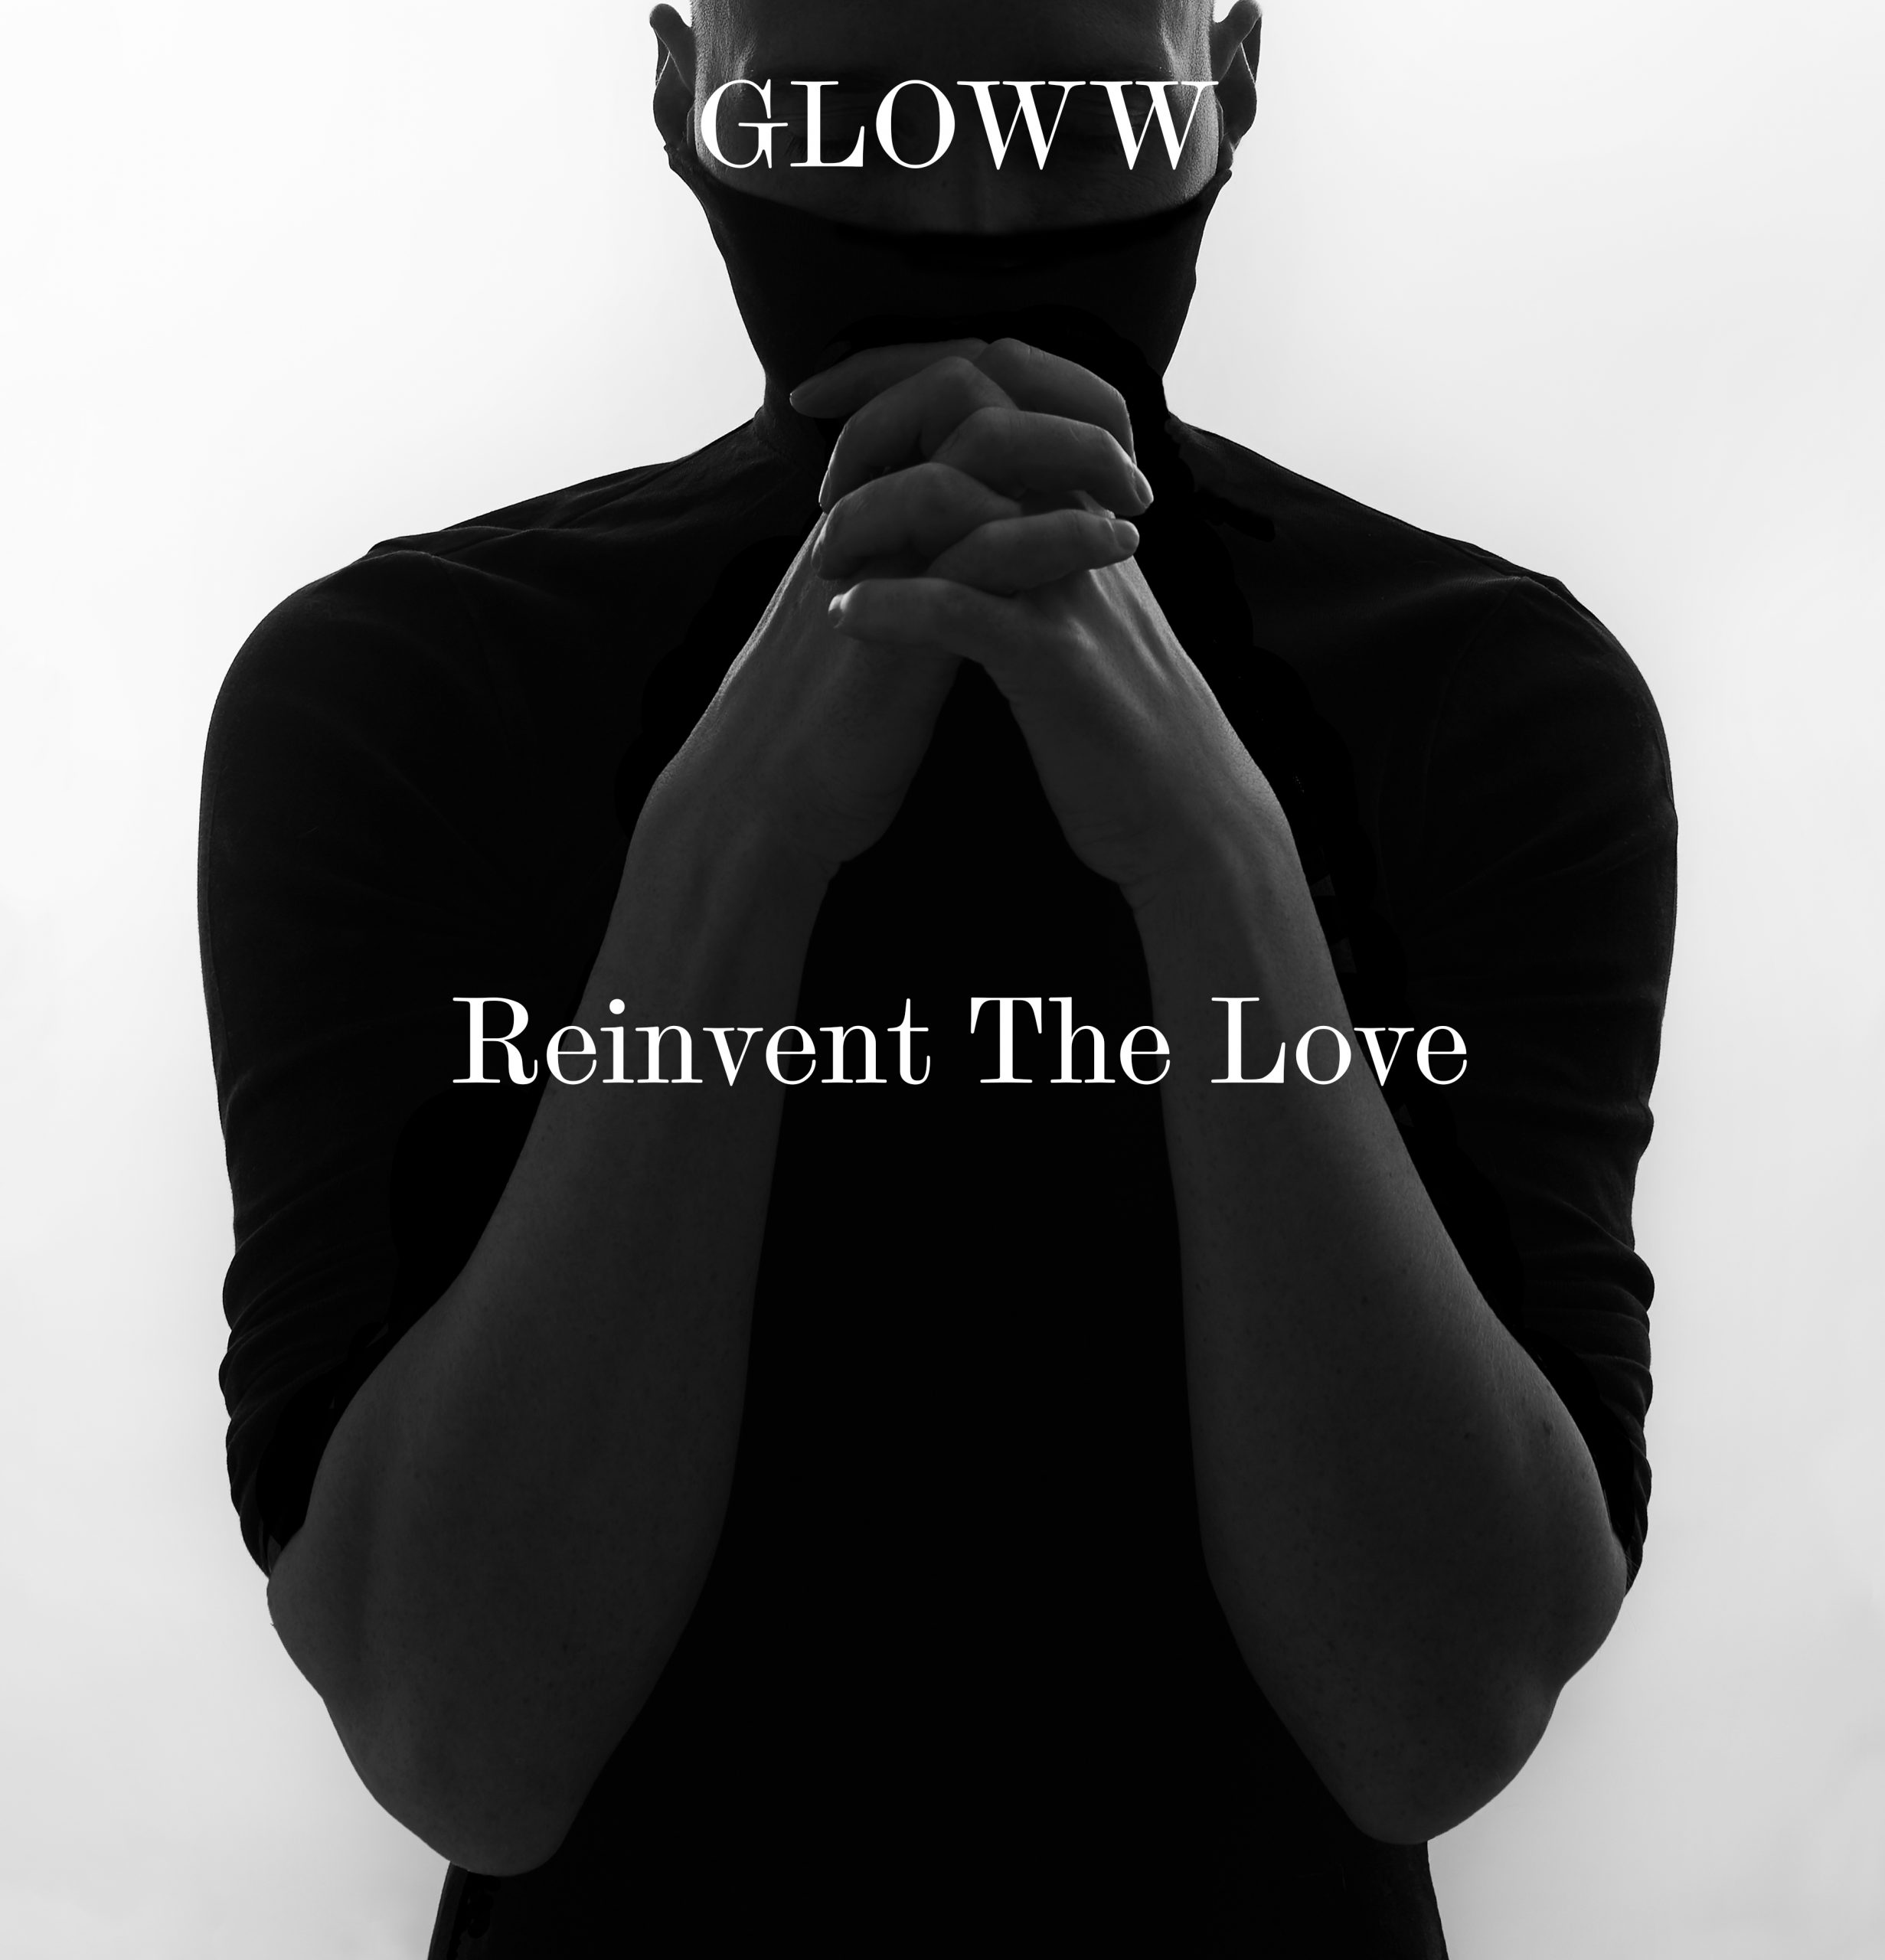 Bringing a New Distinctive Orchestral EDM Pop Sound to the Playlist, 'Gloww' gets us thinking on 'Reinvent The Love'